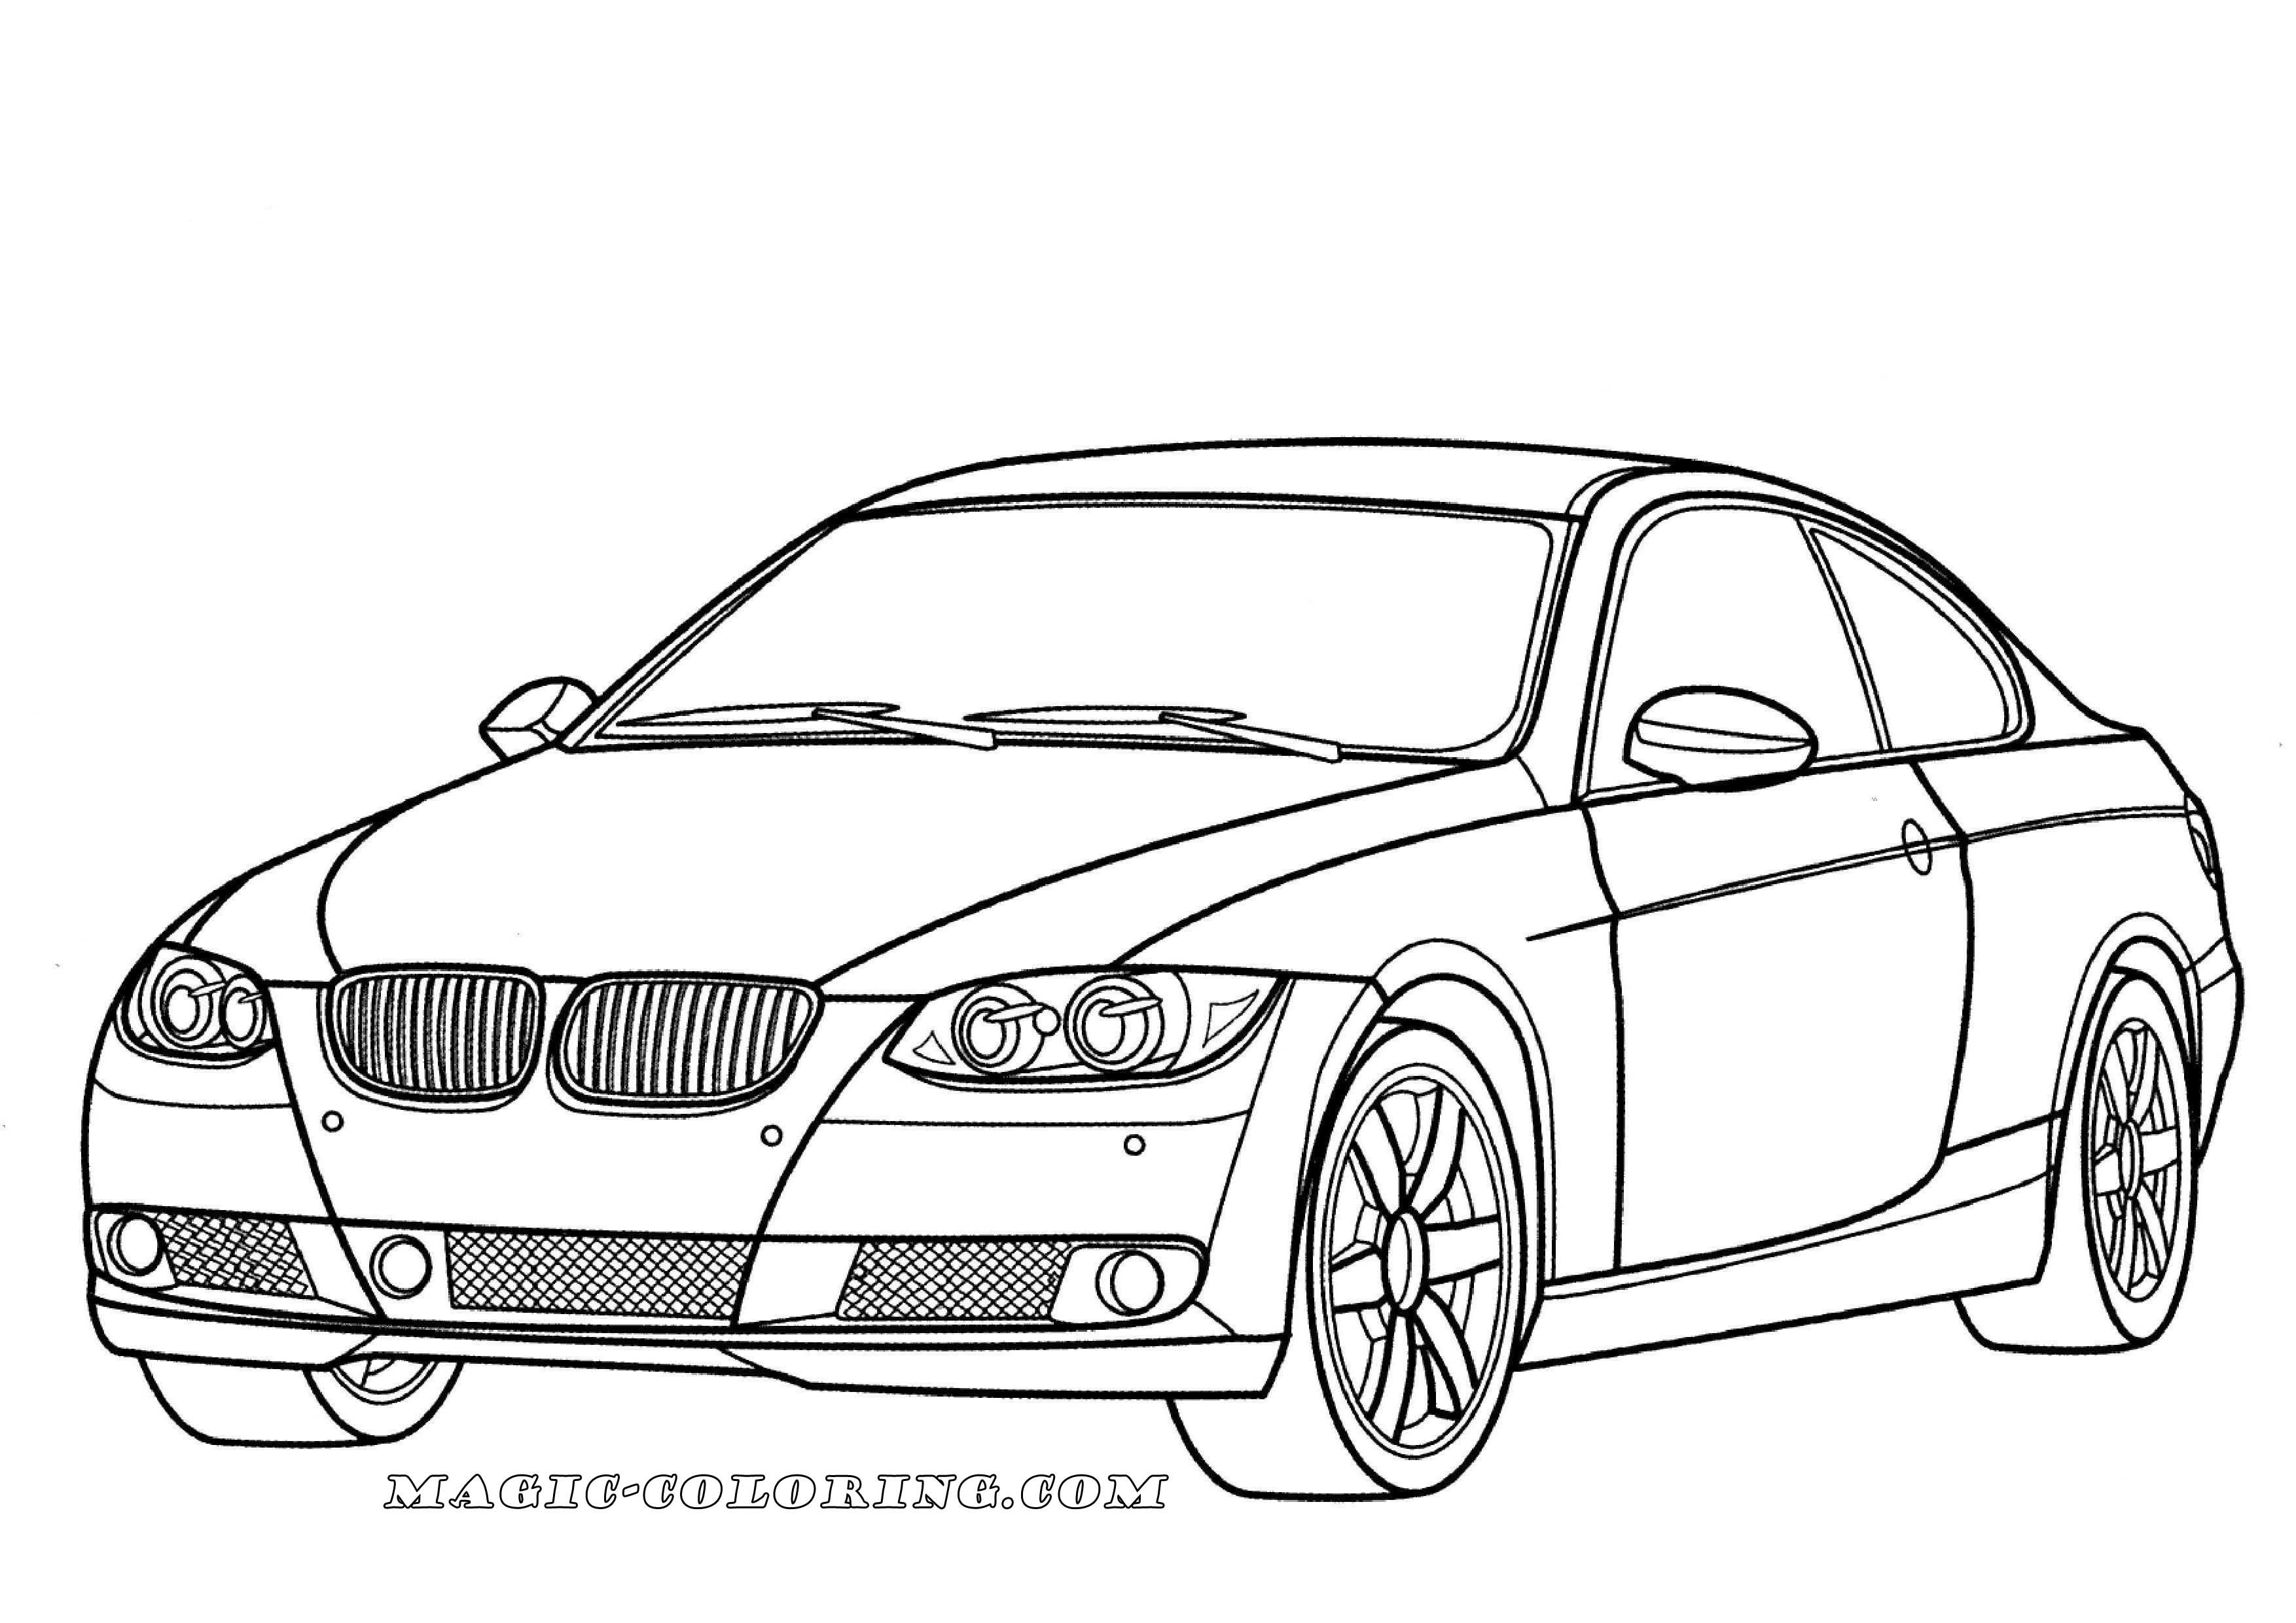 Bmw 3 Series Coloring Page Cars Coloring Pages Race Car Coloring Pages Car Colors